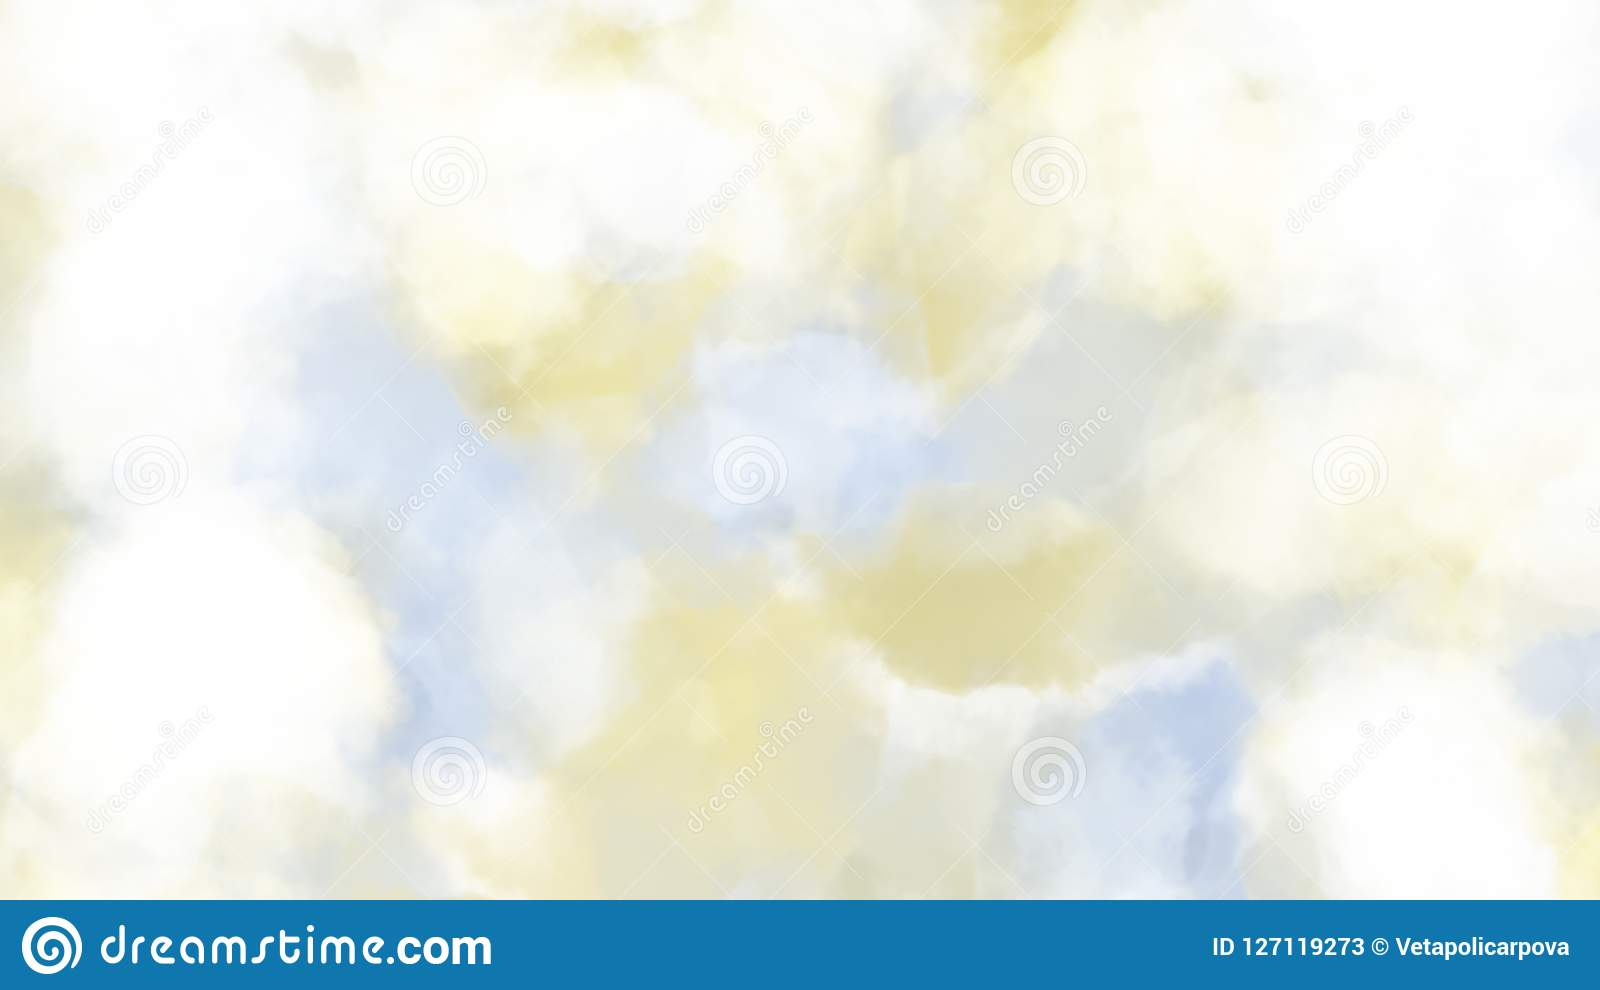 Background With Paint Divorces And Drops Periwinkles Stock Illustration Illustration Of Design Paintbrush 127119273